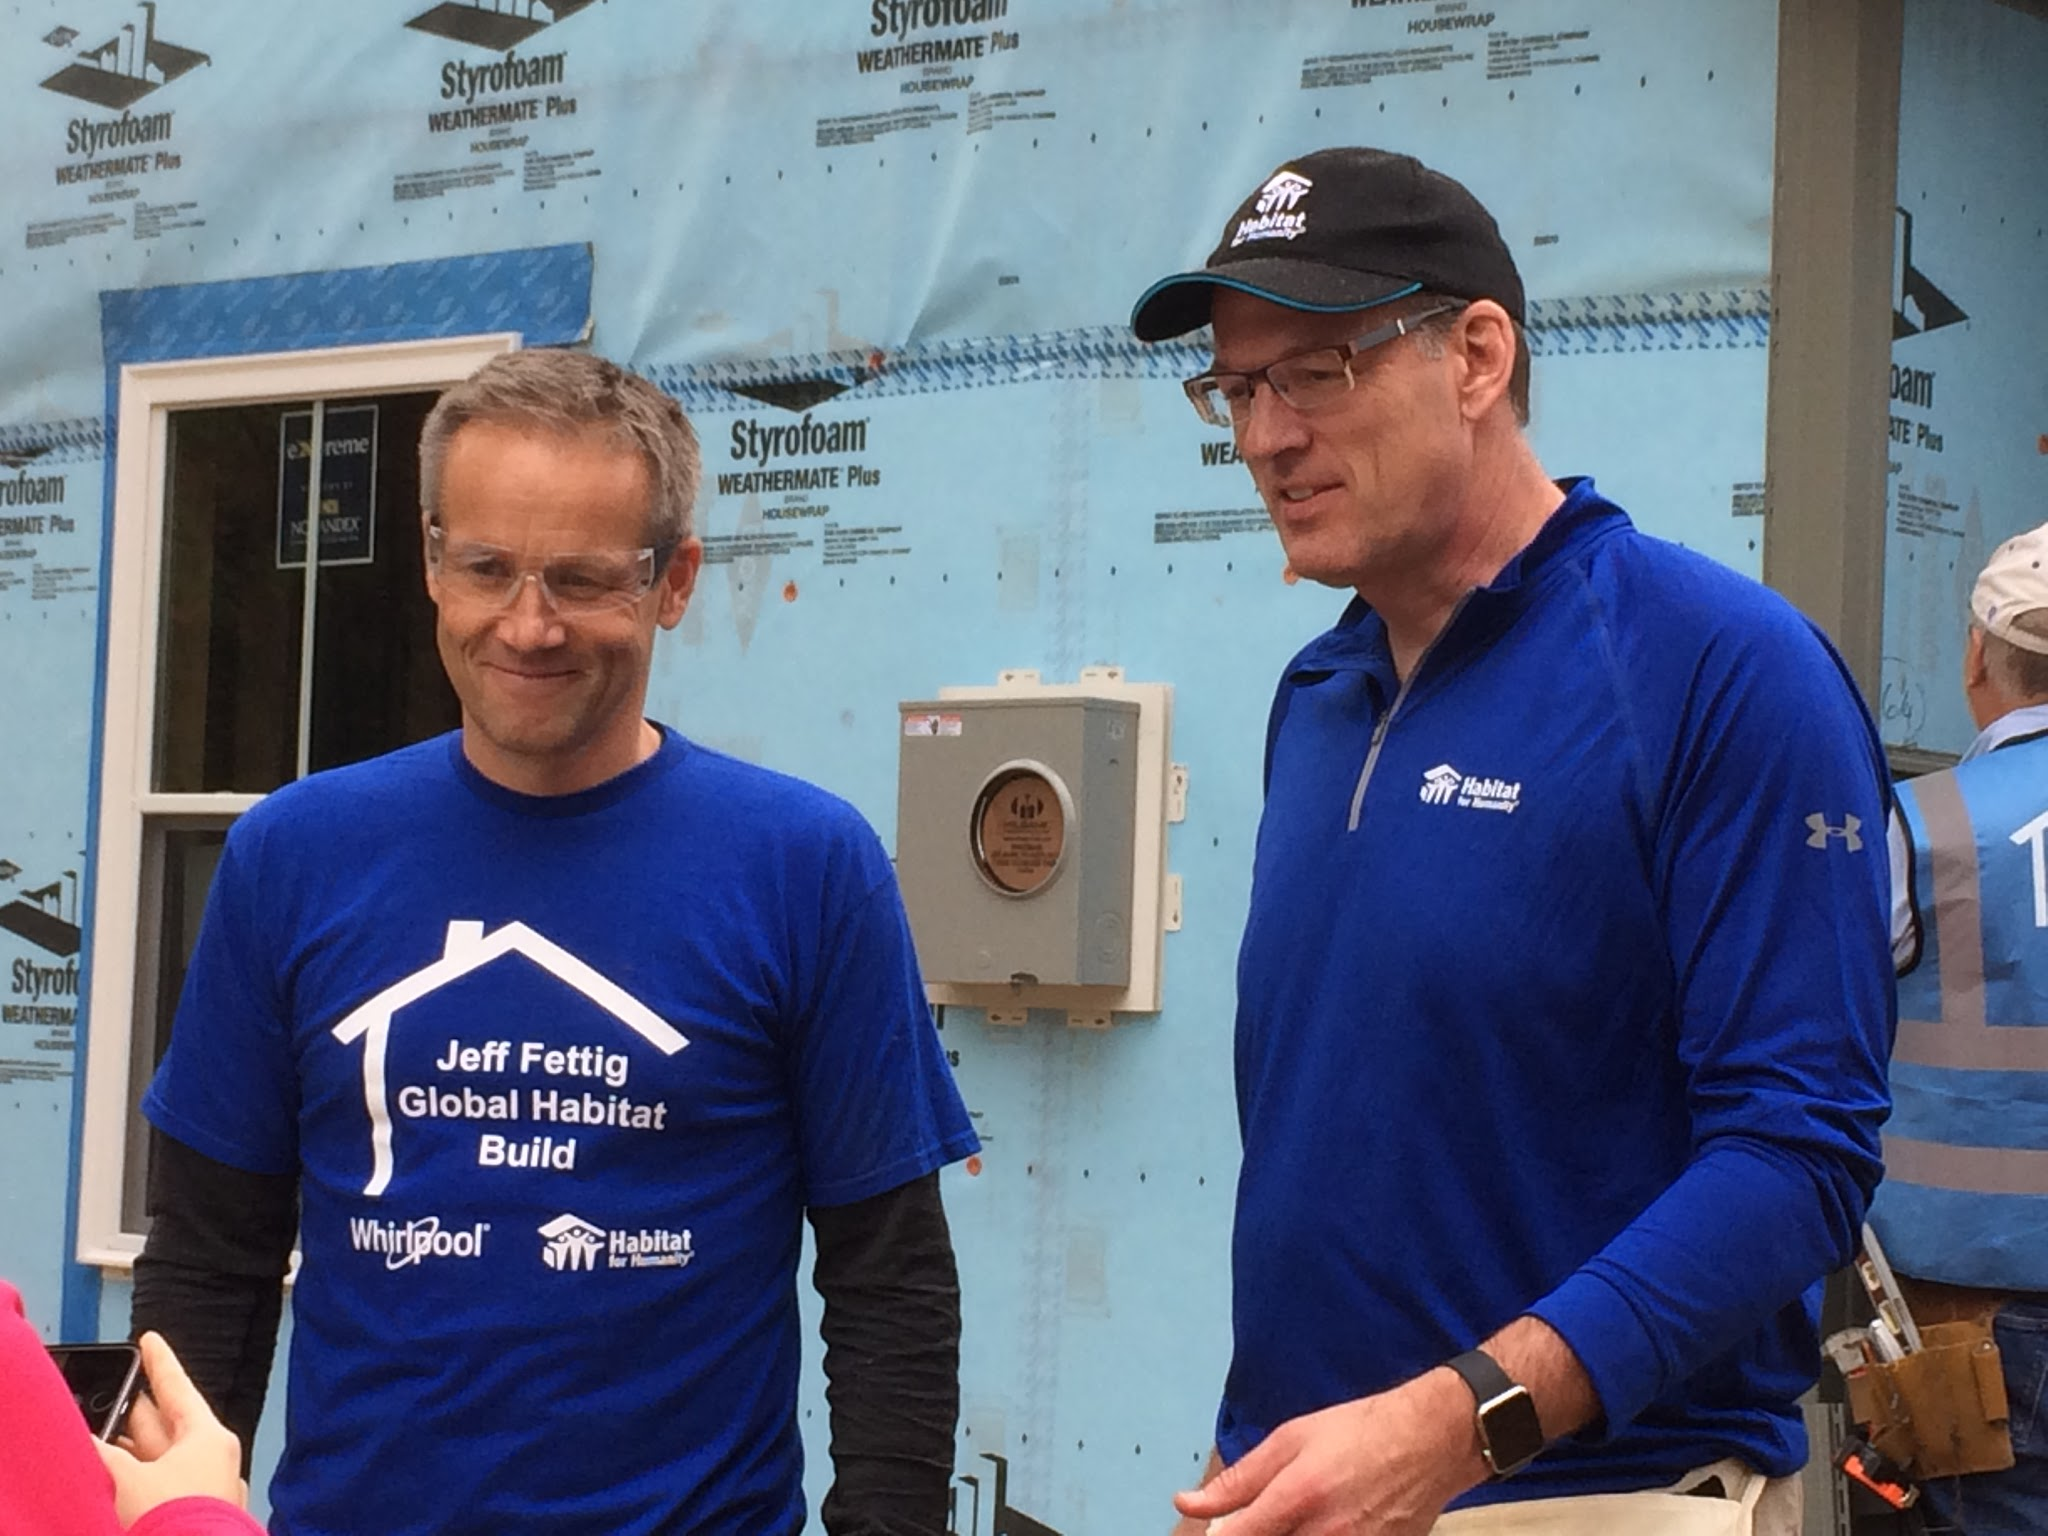 Whirlpool Corporation CEO Marc Bitzer, left, and former CEO Jeff Fettig at a Global Habitat Build building site